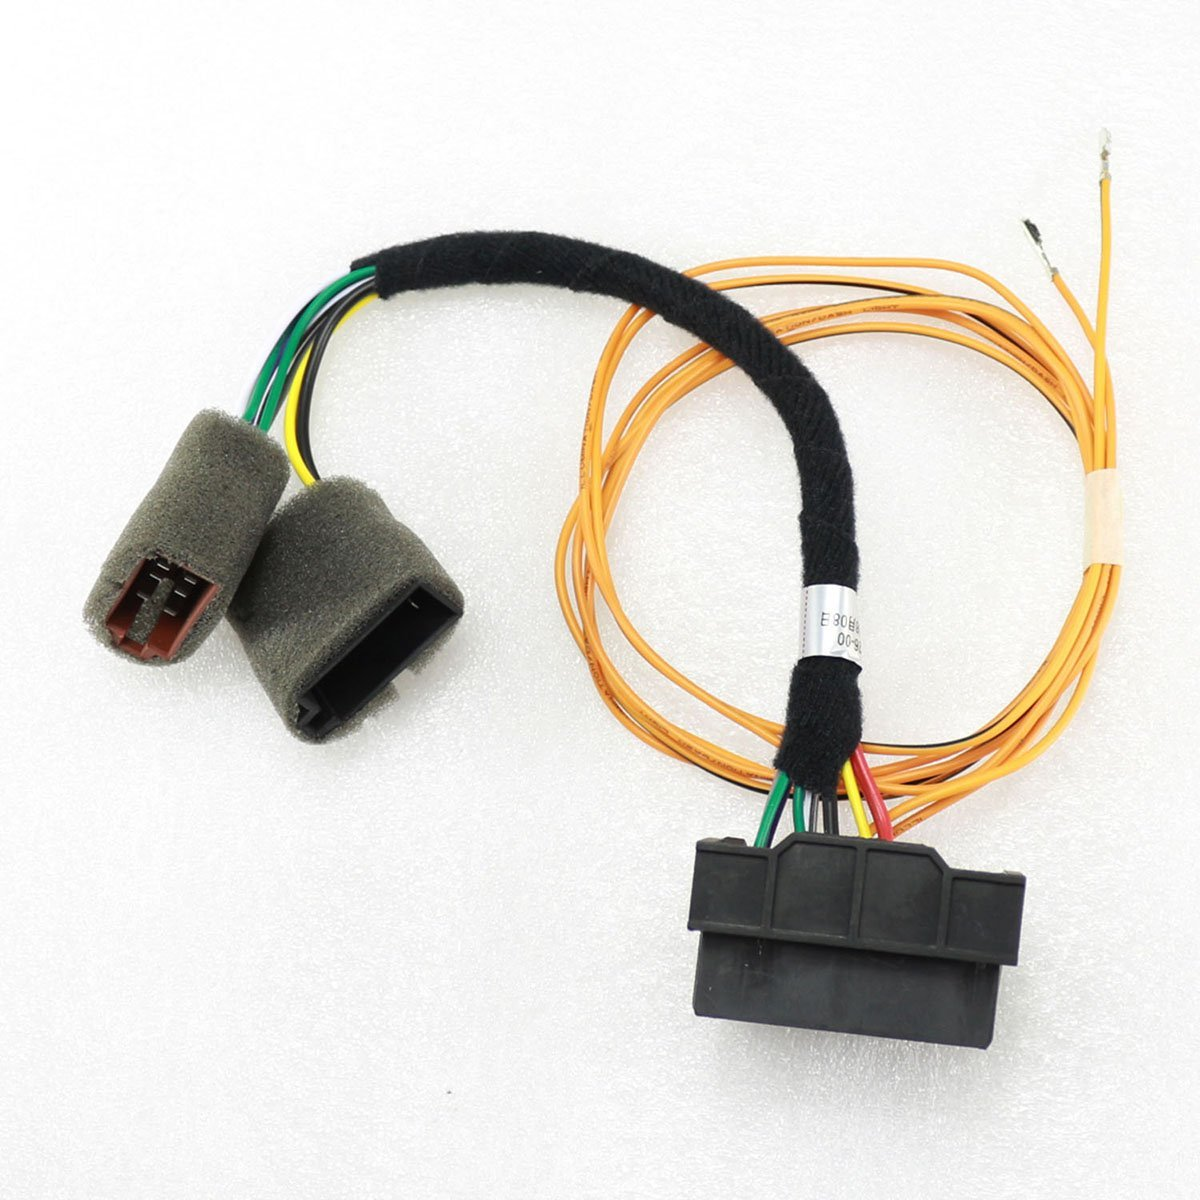 Buy Oem Vw Rcd510 Rcd310 Wiring Harness Adapter Radio Iso To Quadlock Generic Stereo Connector Wire Plug Play Cable For Rns510